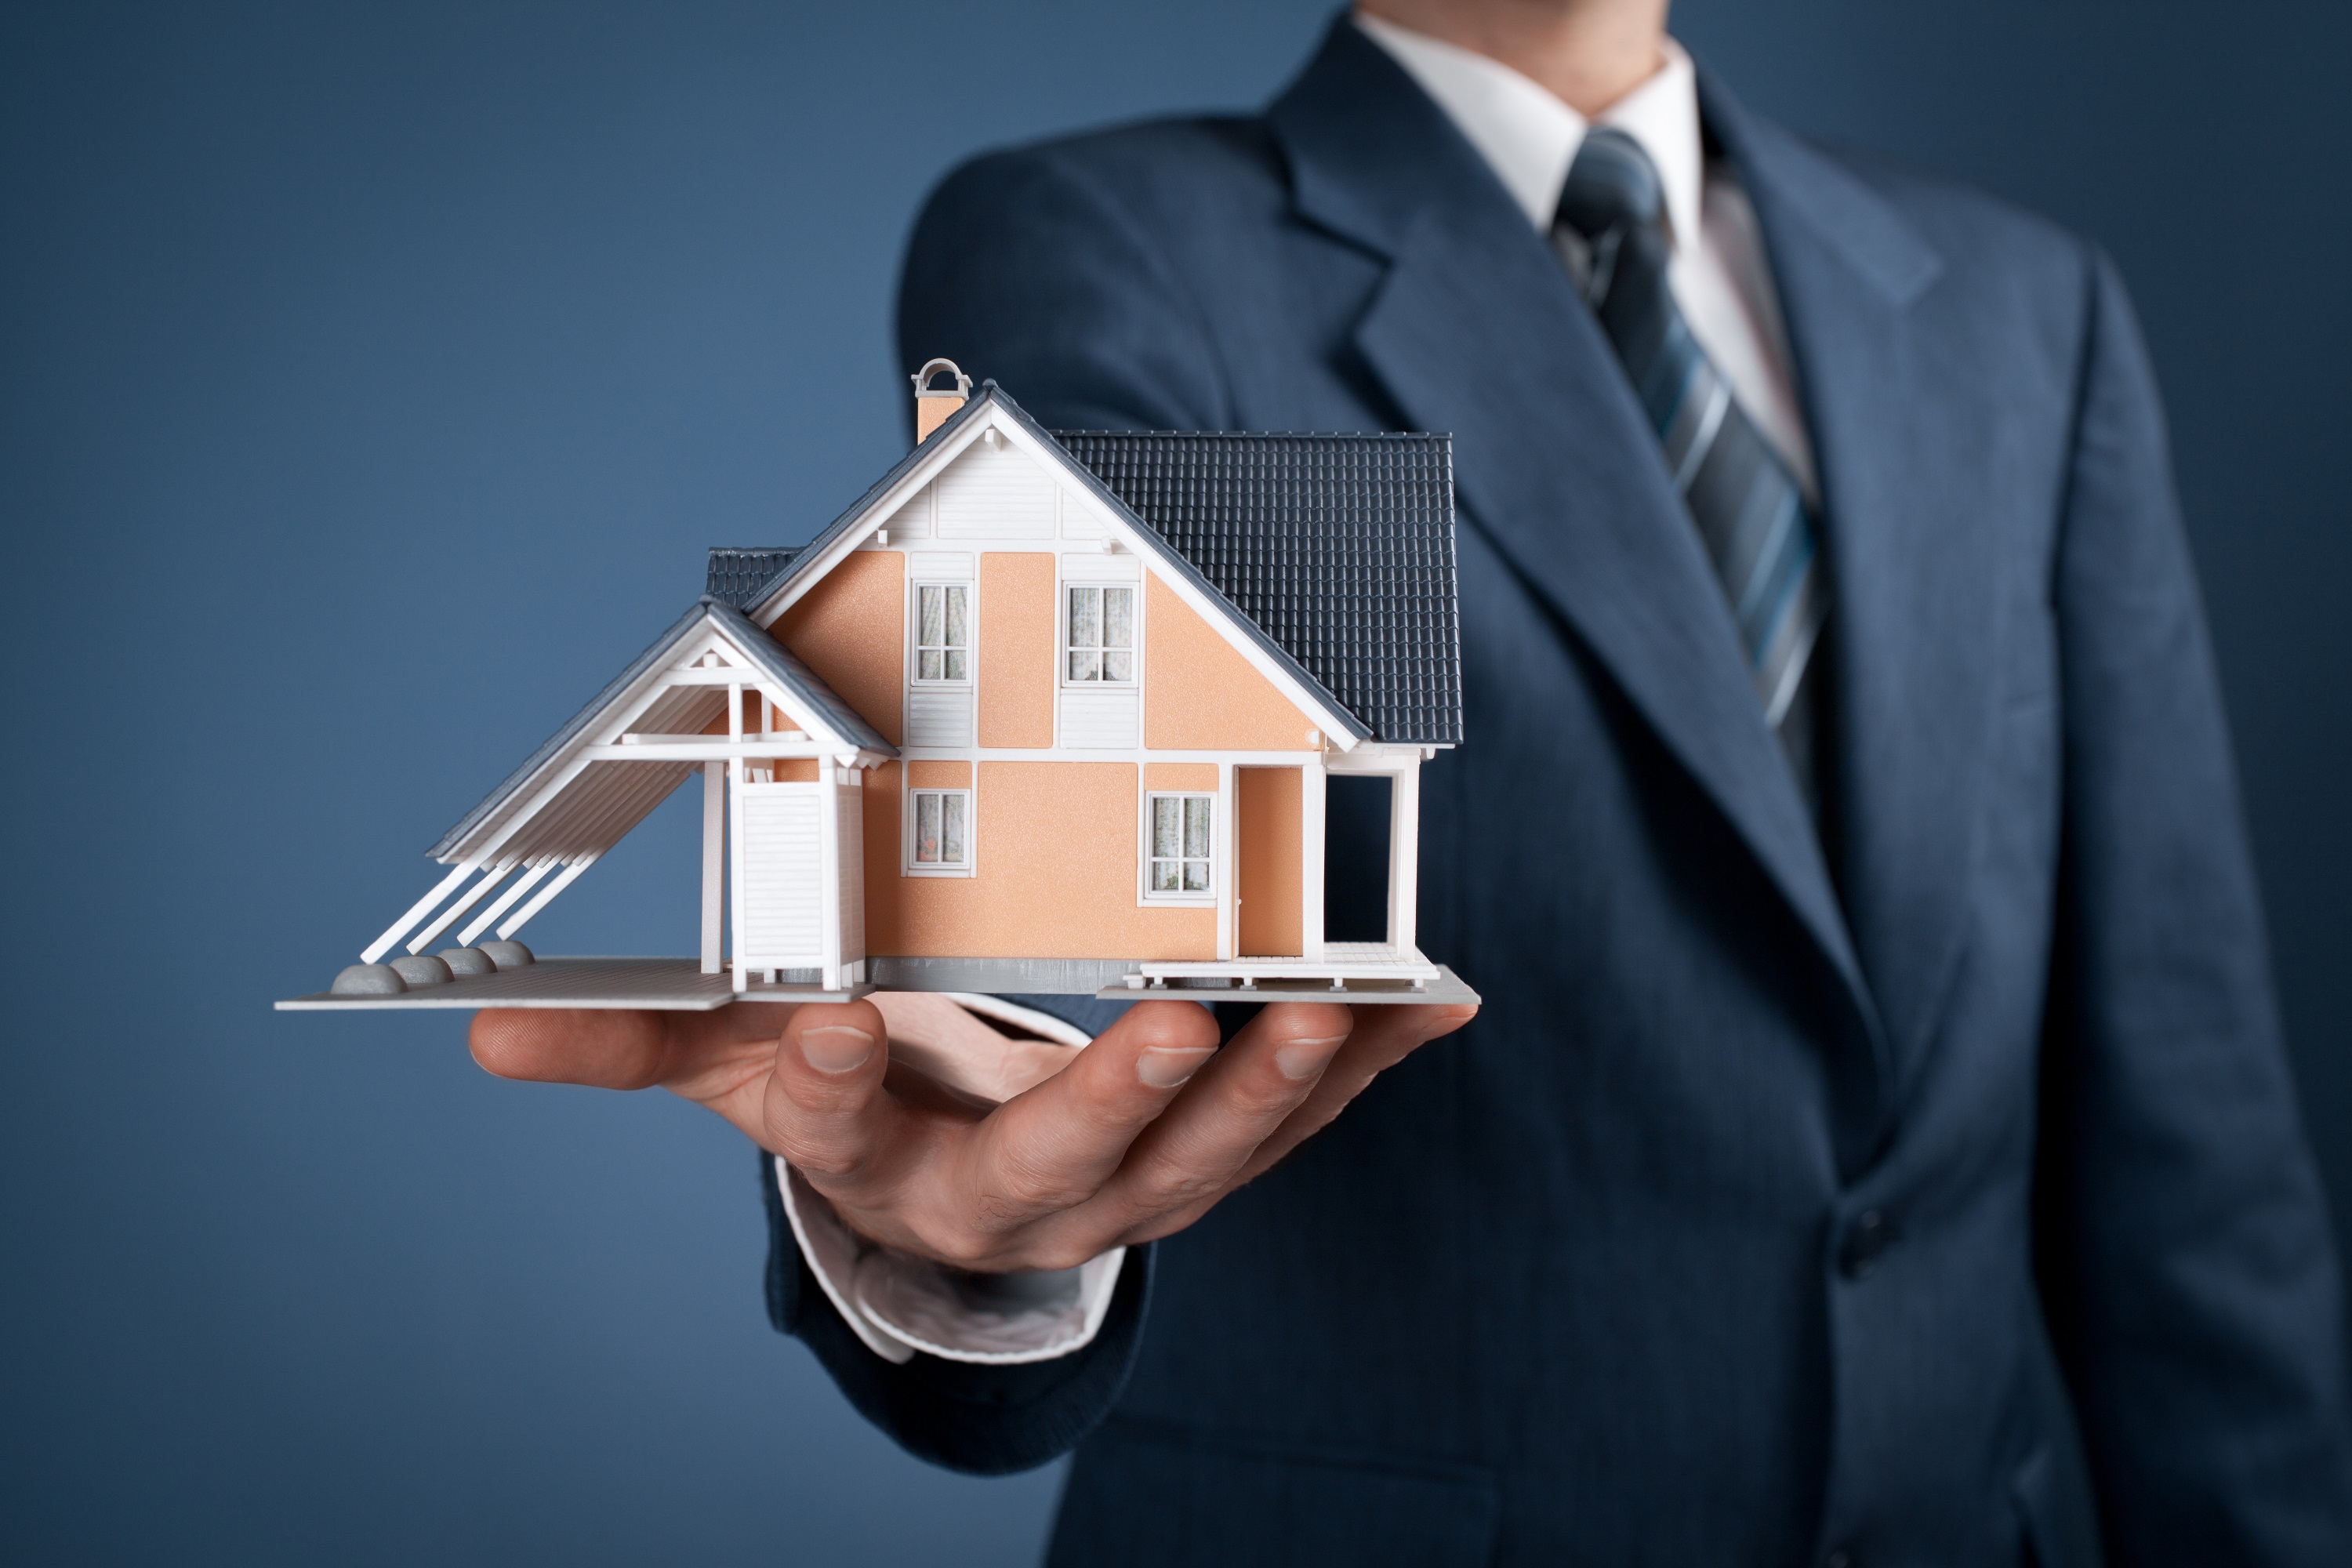 trust us with your home sale